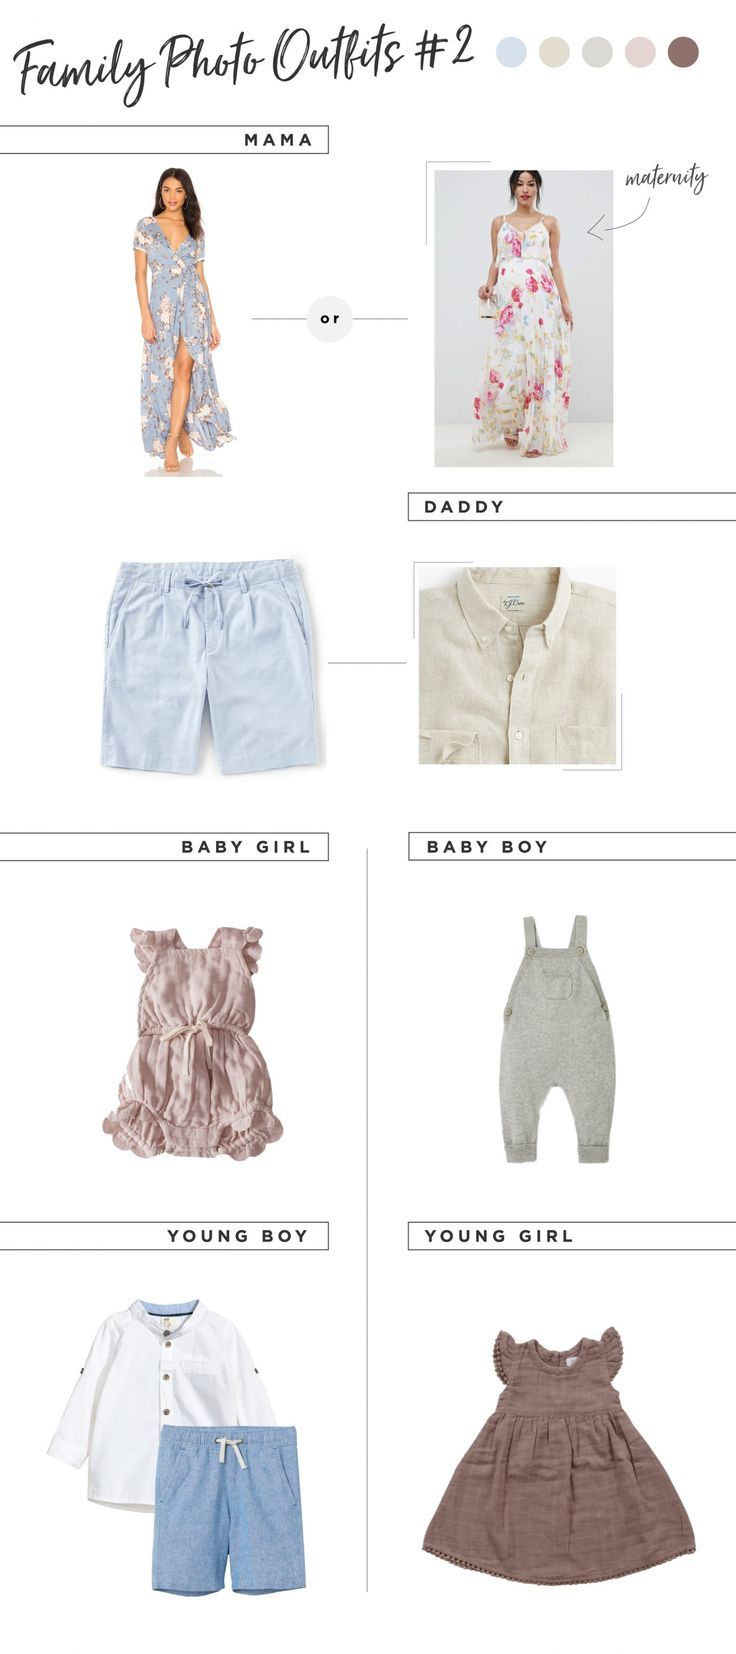 Family Photo Outfit Ideas for Summer #familyphotooutfits